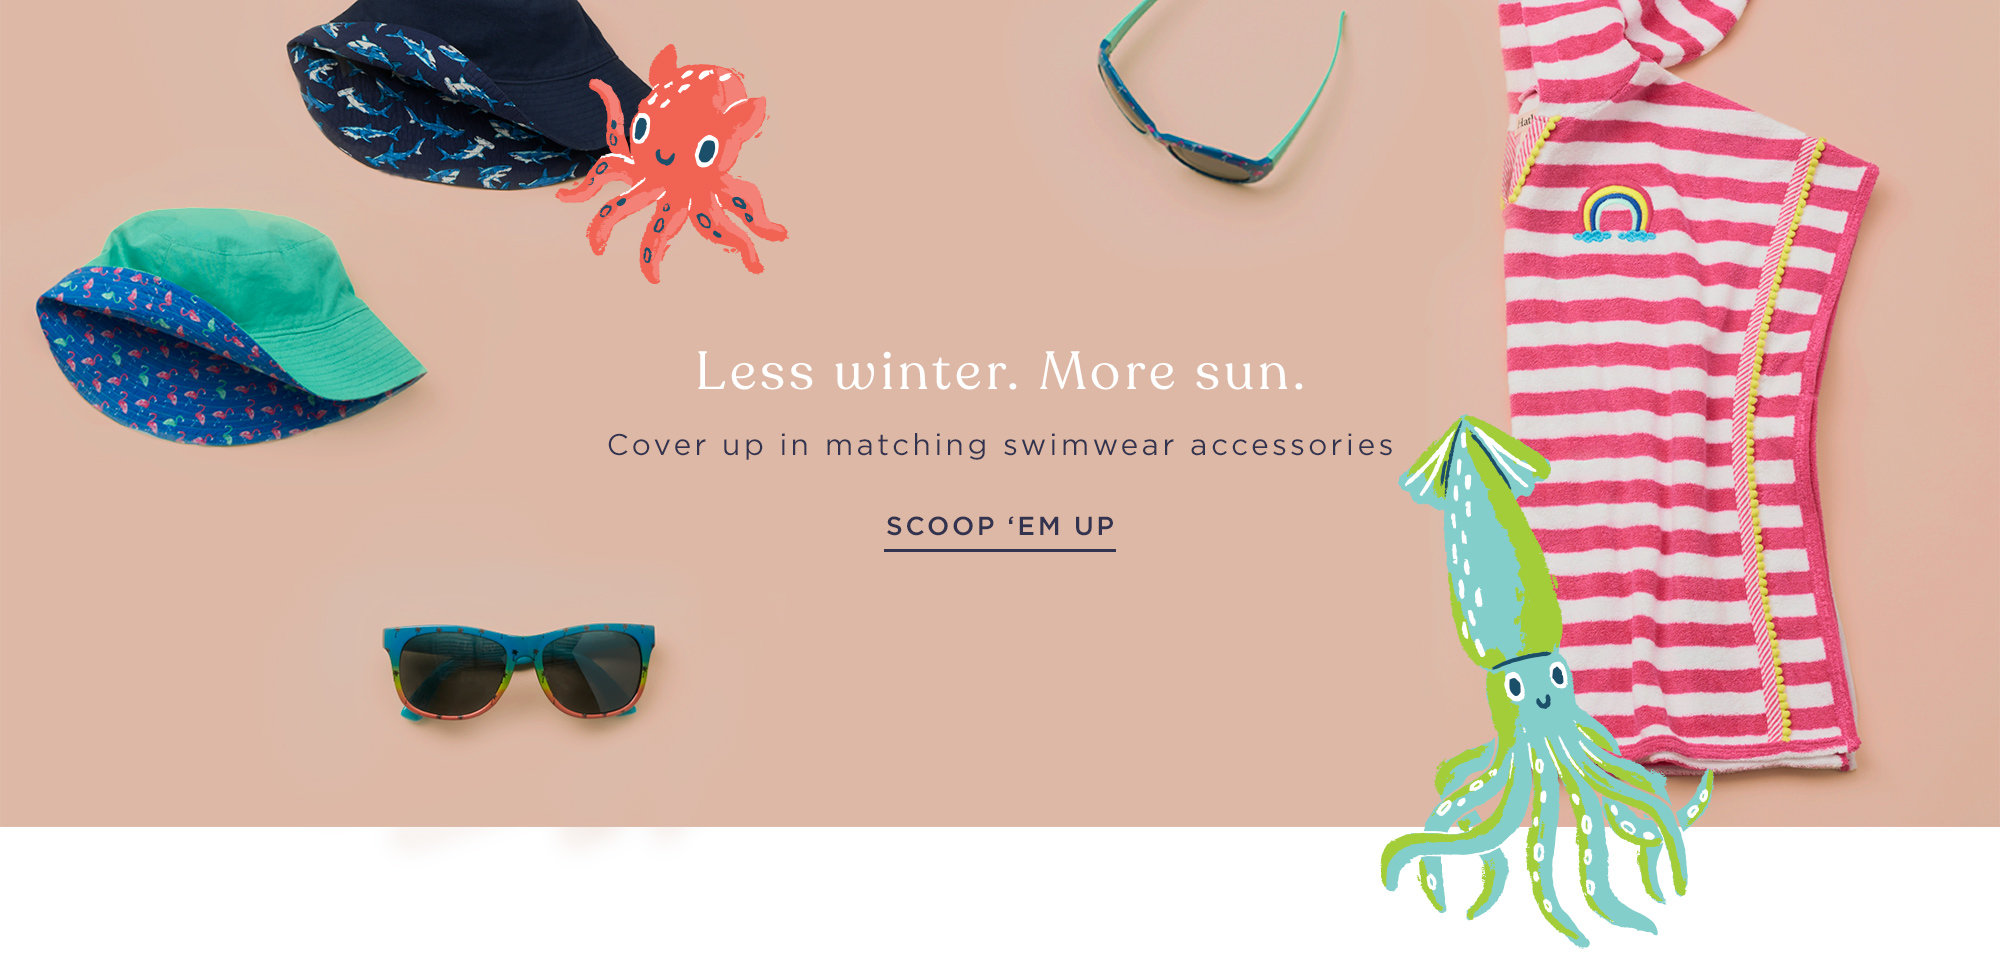 Shop swimwear accessories